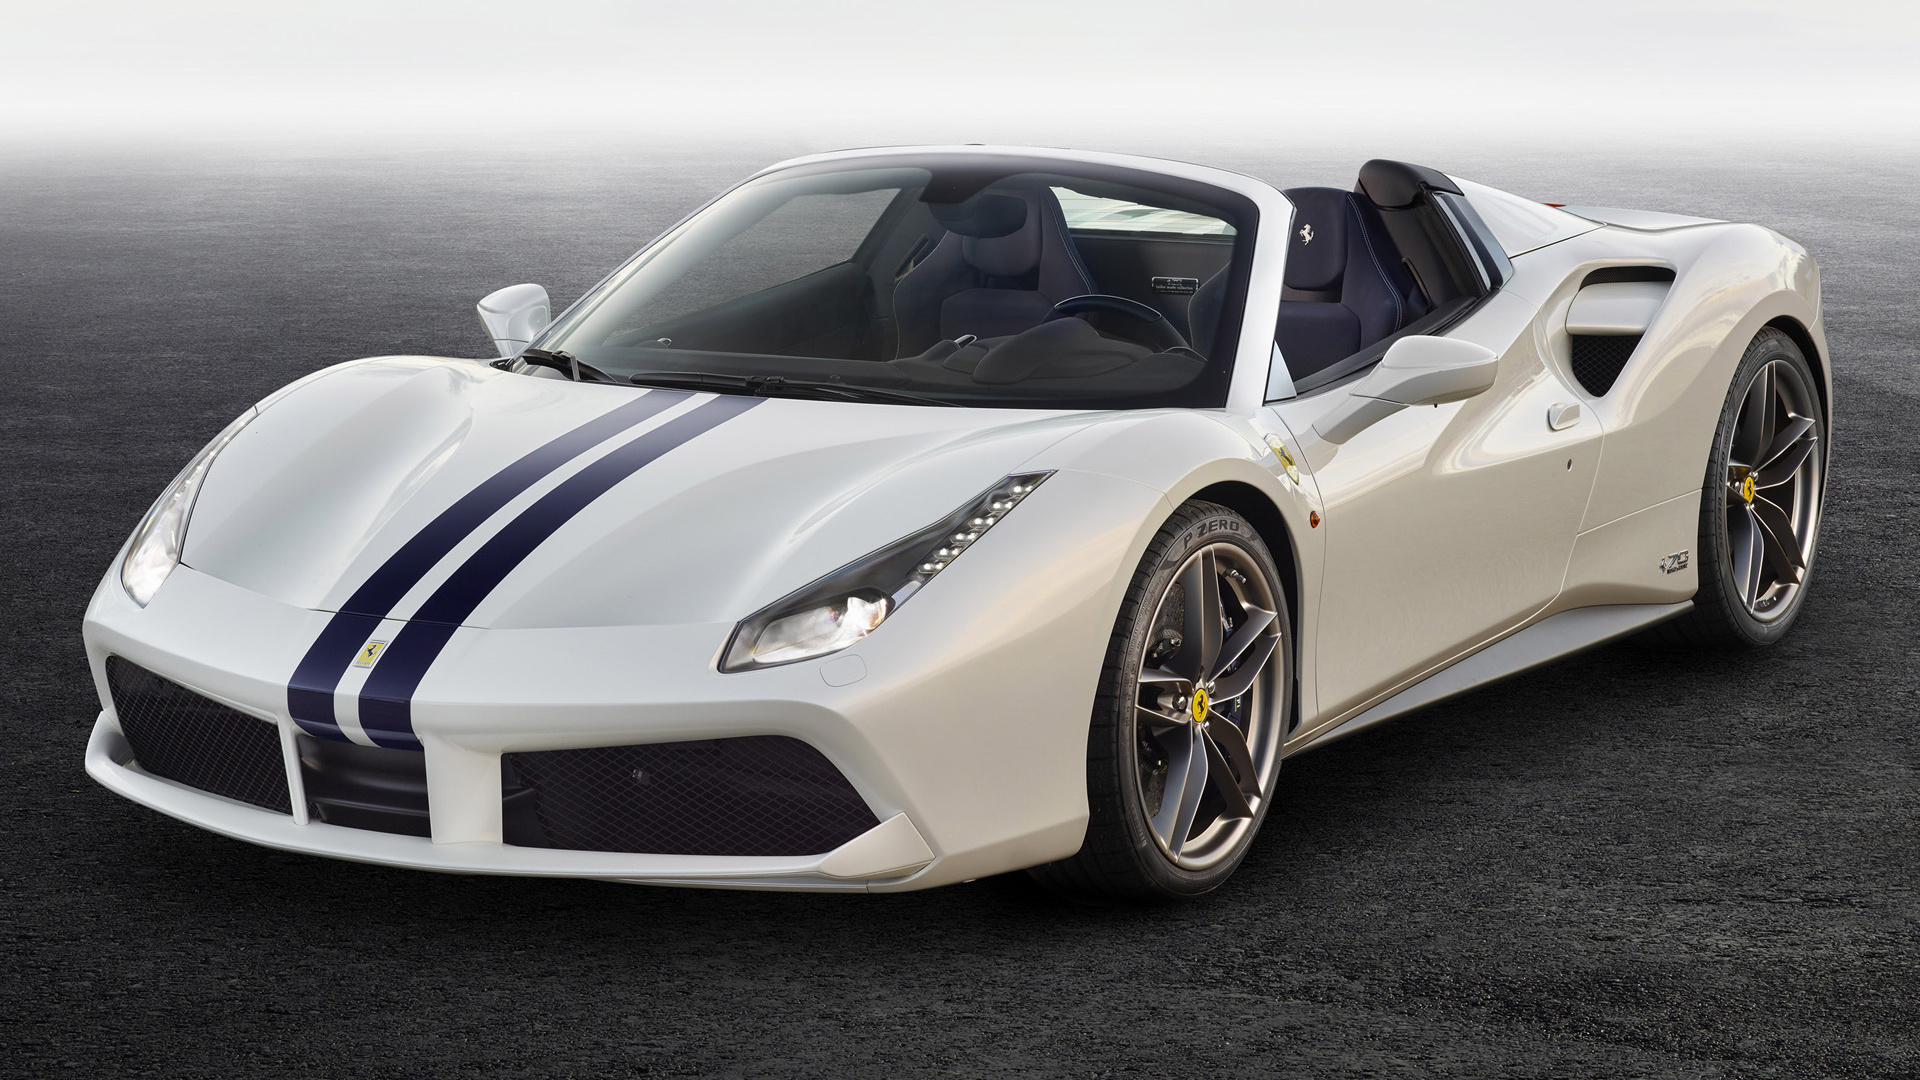 Ferrari 488 Spider The White Spider (2017) Wallpapers and HD Images - Car Pixel